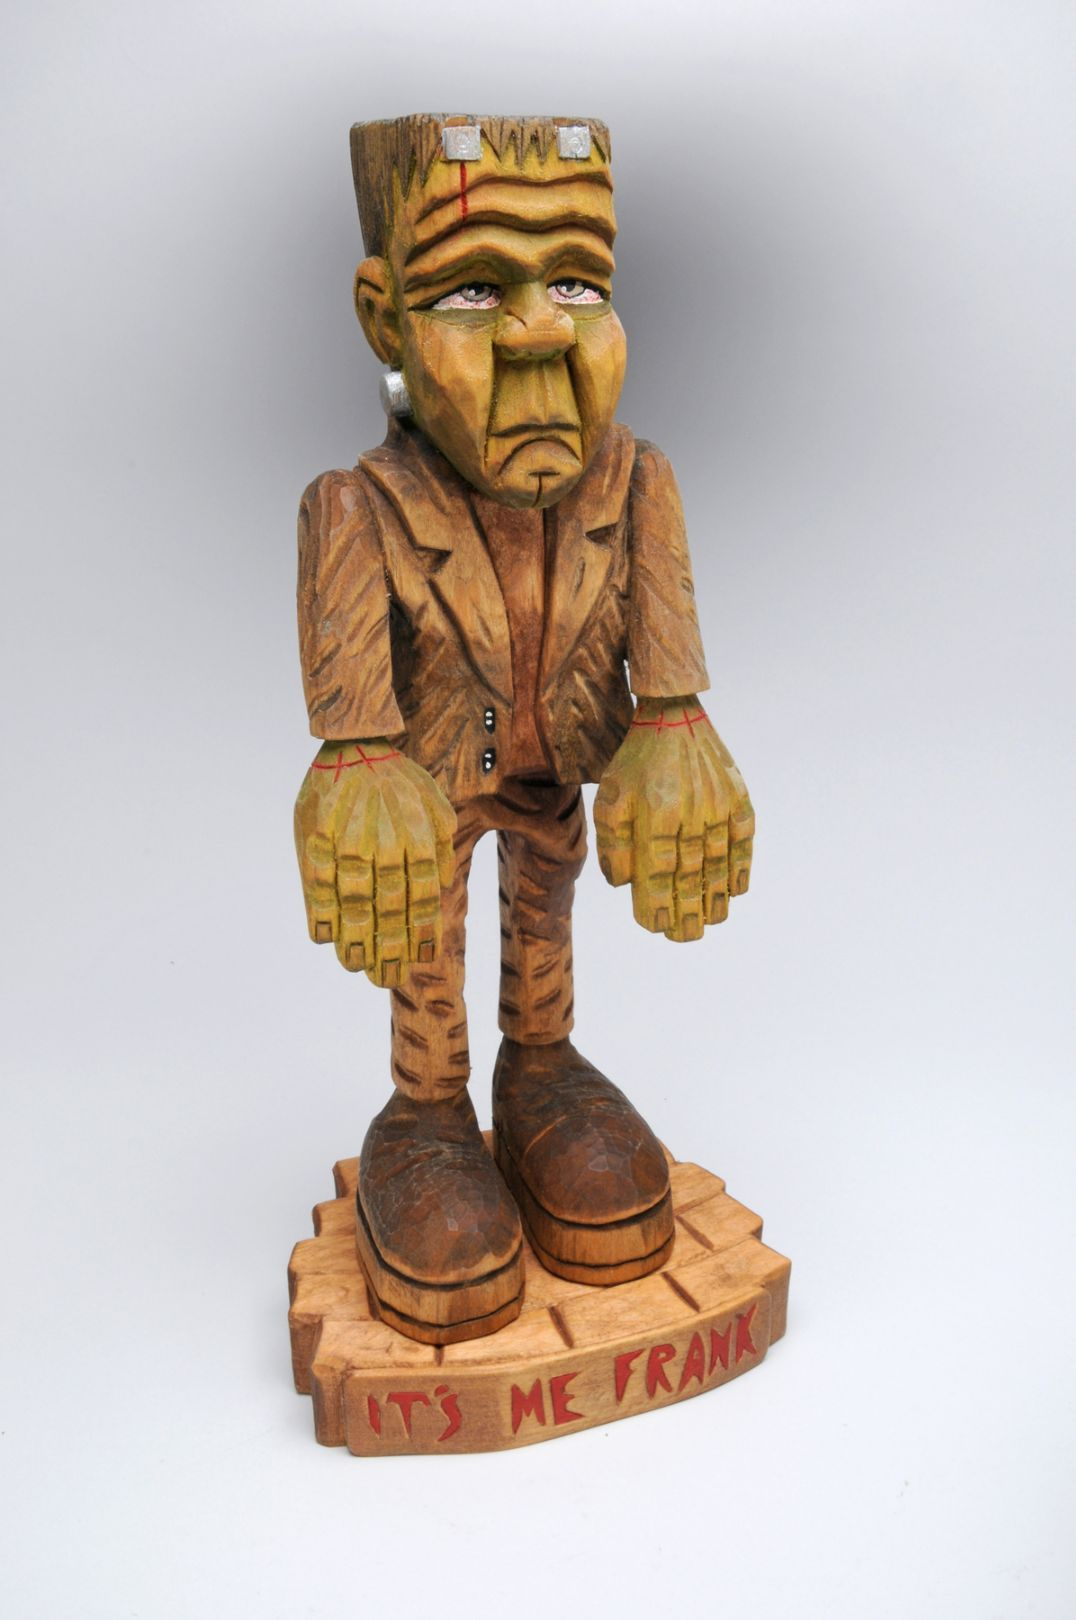 2011 AIW Show | Carving, Caricature